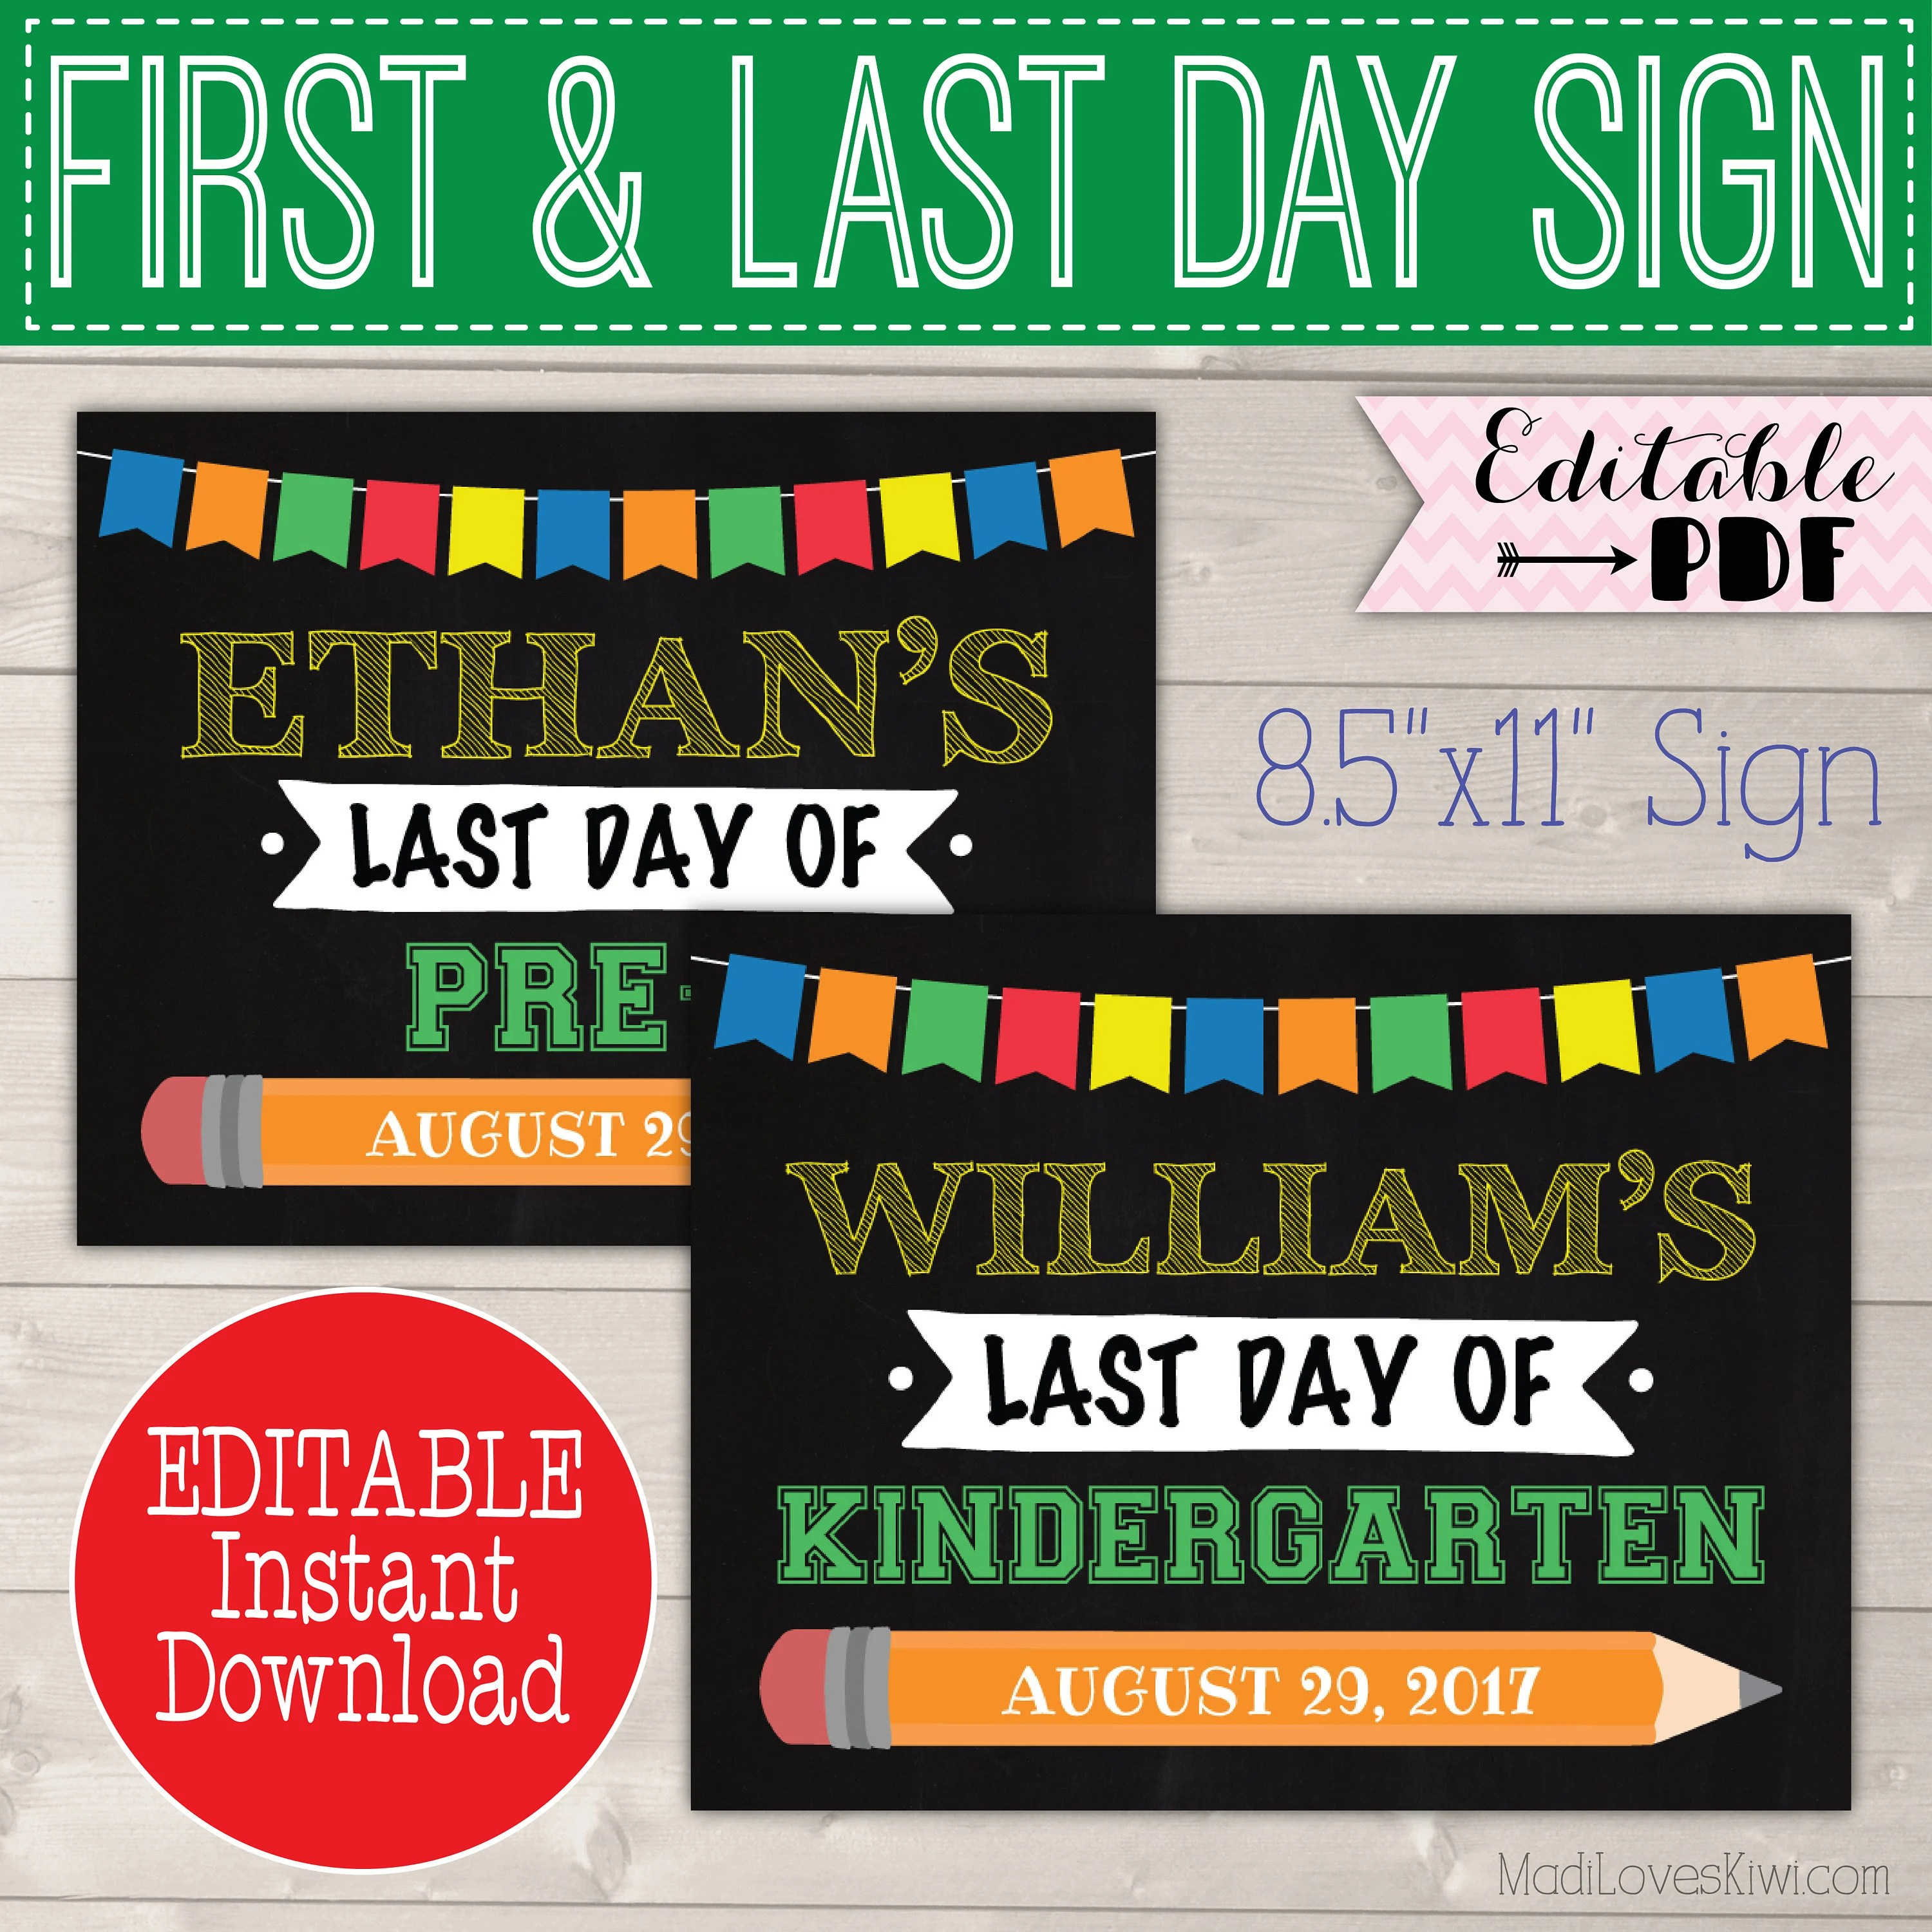 First Day of School Sign Printable, 1st Day Chalkboard Instant